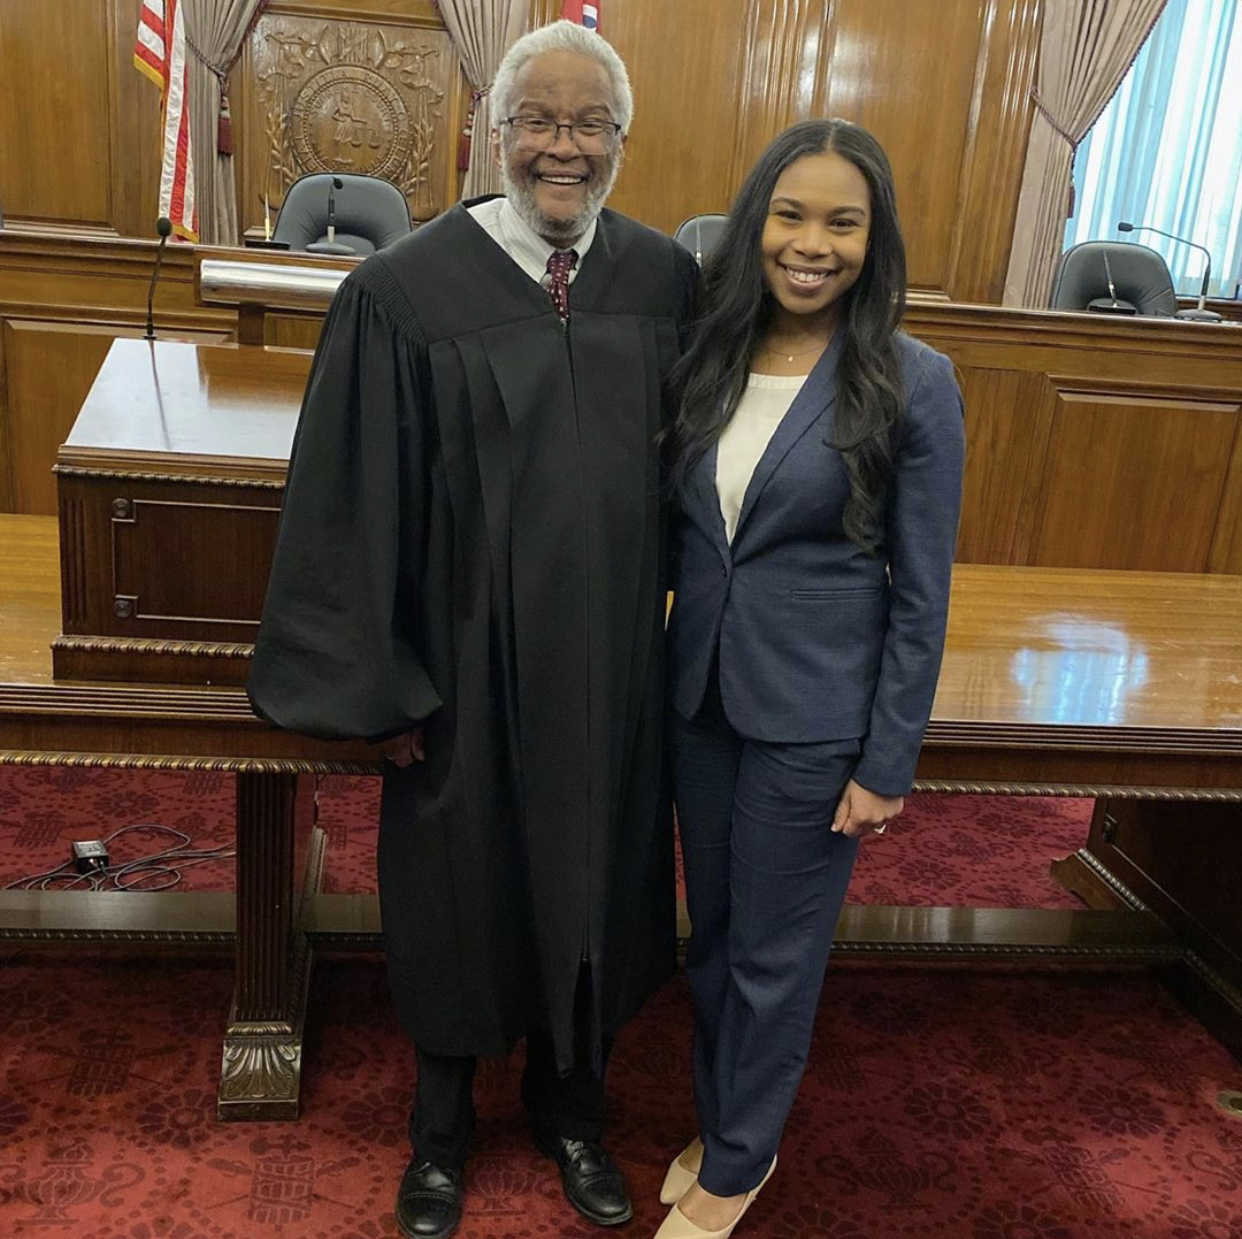 Judge holds baby during attorney admission ceremony.